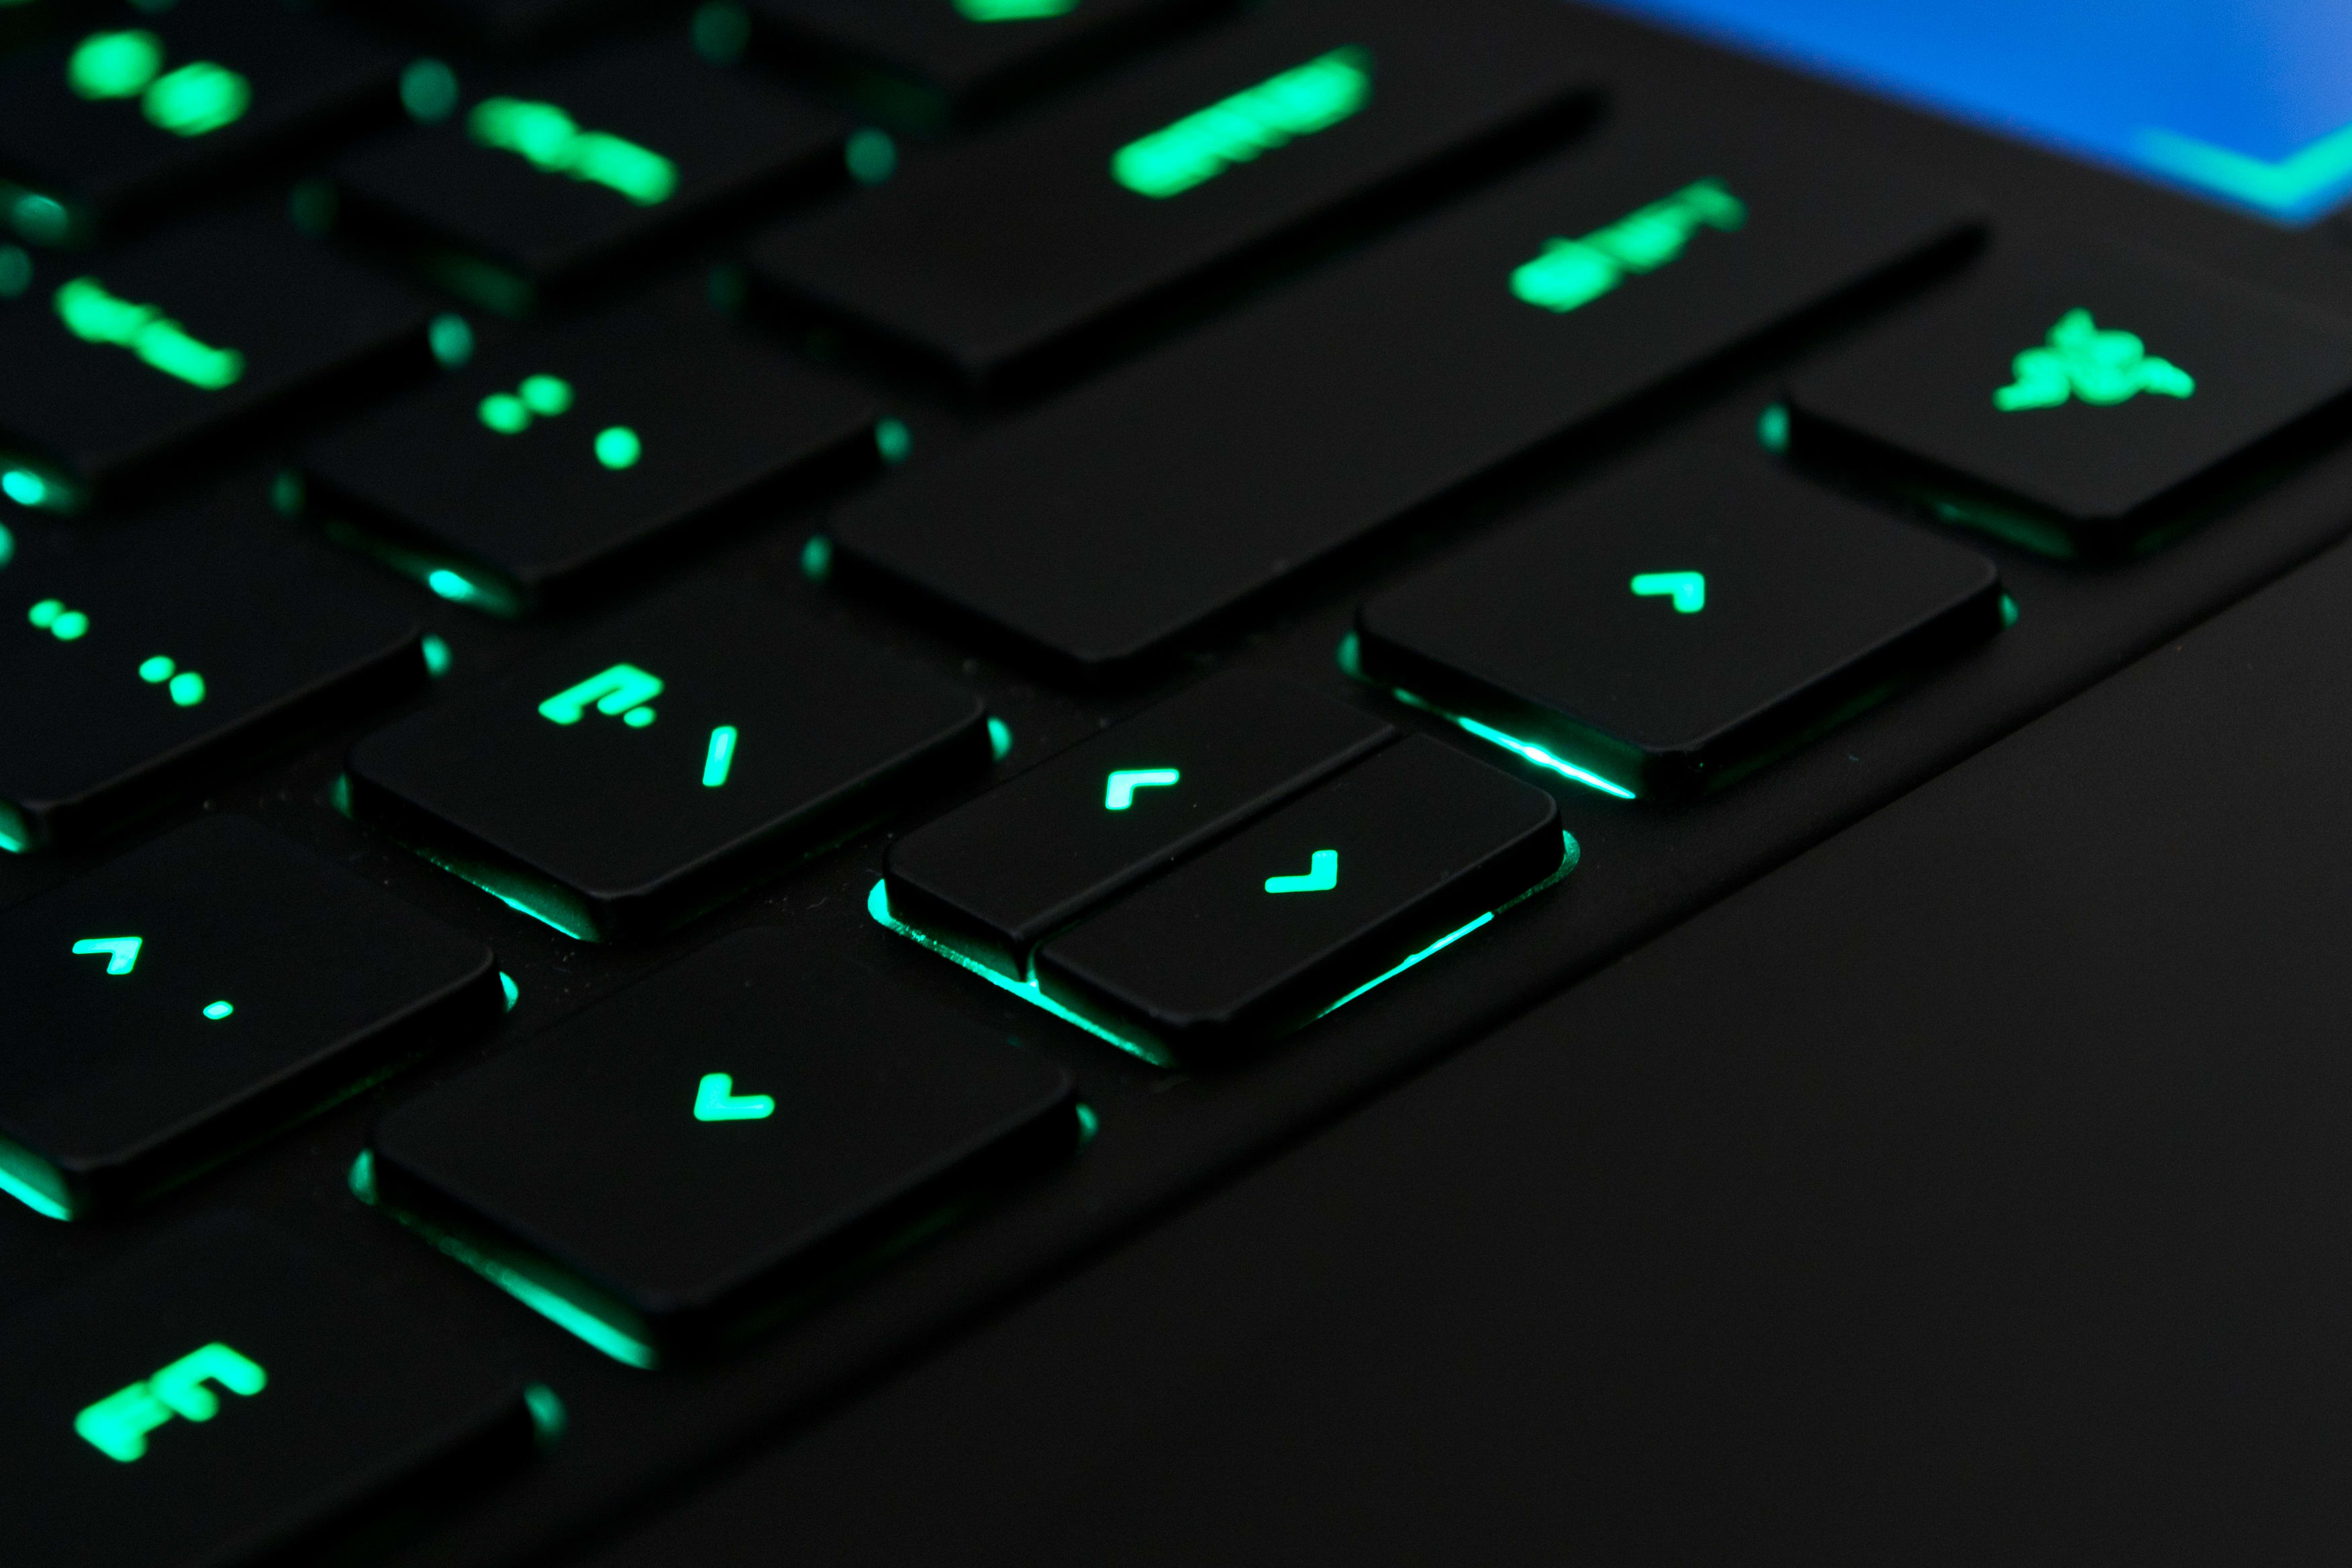 A photo of the Razer Blade Pro's arrow keys.